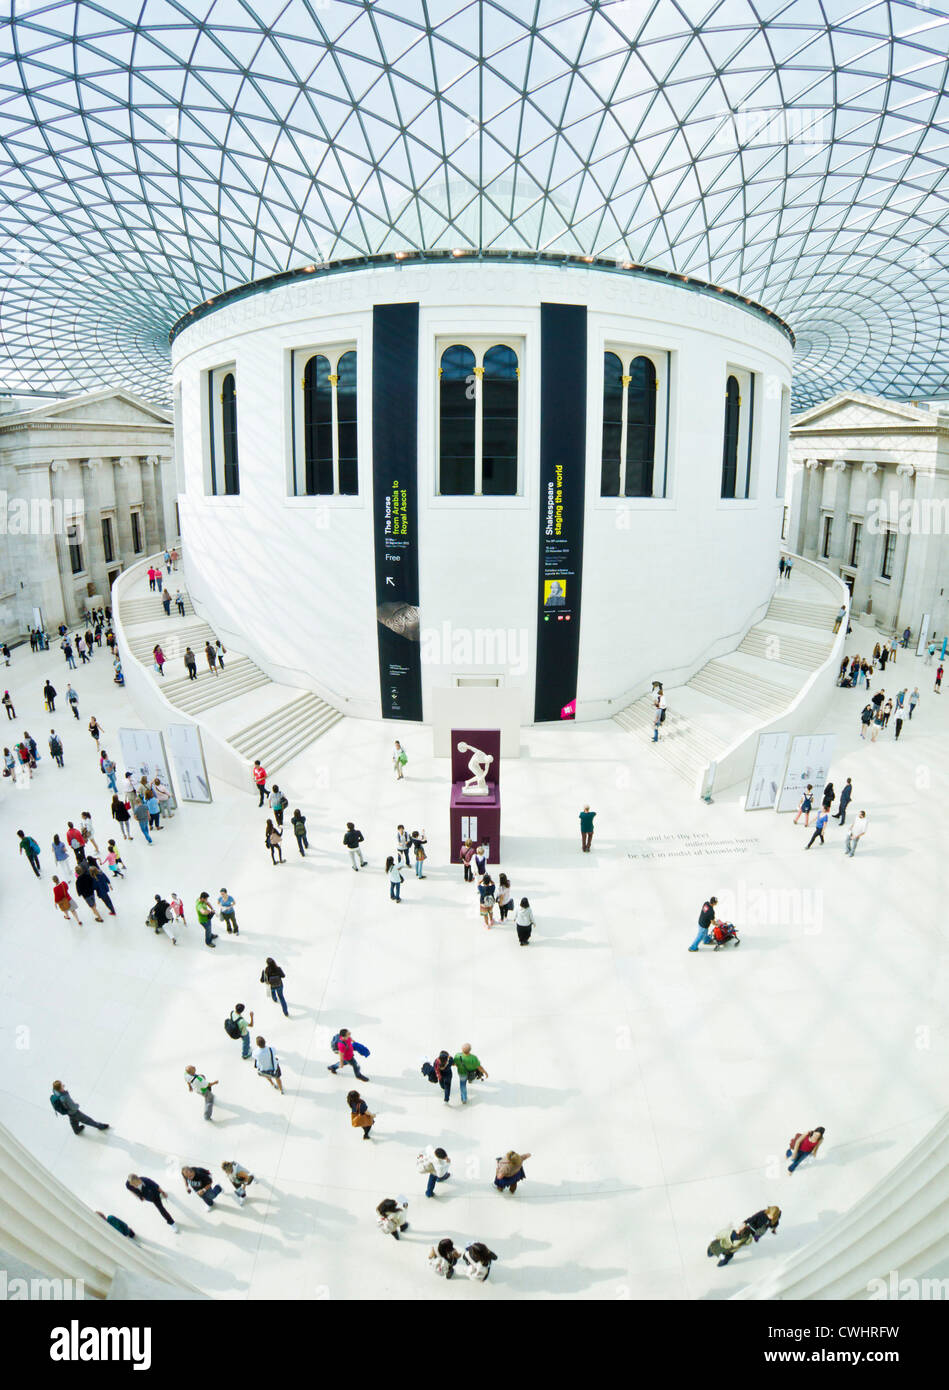 British Museum London Queen Elizabeth II 'Great Court' glass roof designed by architect Norman Foster London - Stock Image